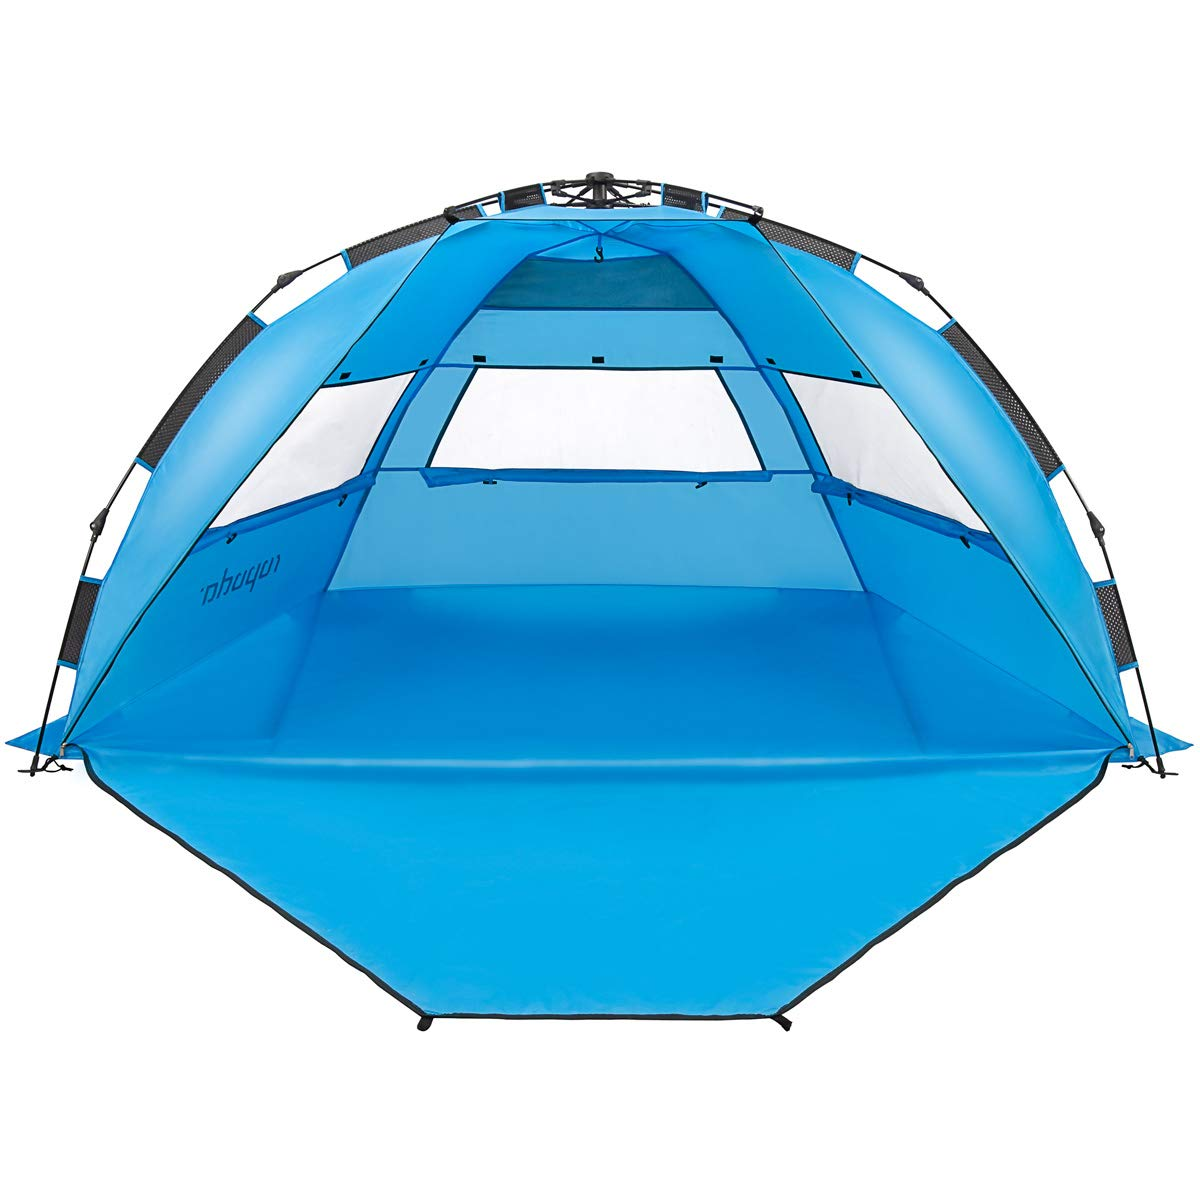 ROPODA Pop Up Beach Tent - Easy to Set Up, Portable Beach Shade with UPF 50+ UV Protection for Kids & Family (Blue) by ROPODA